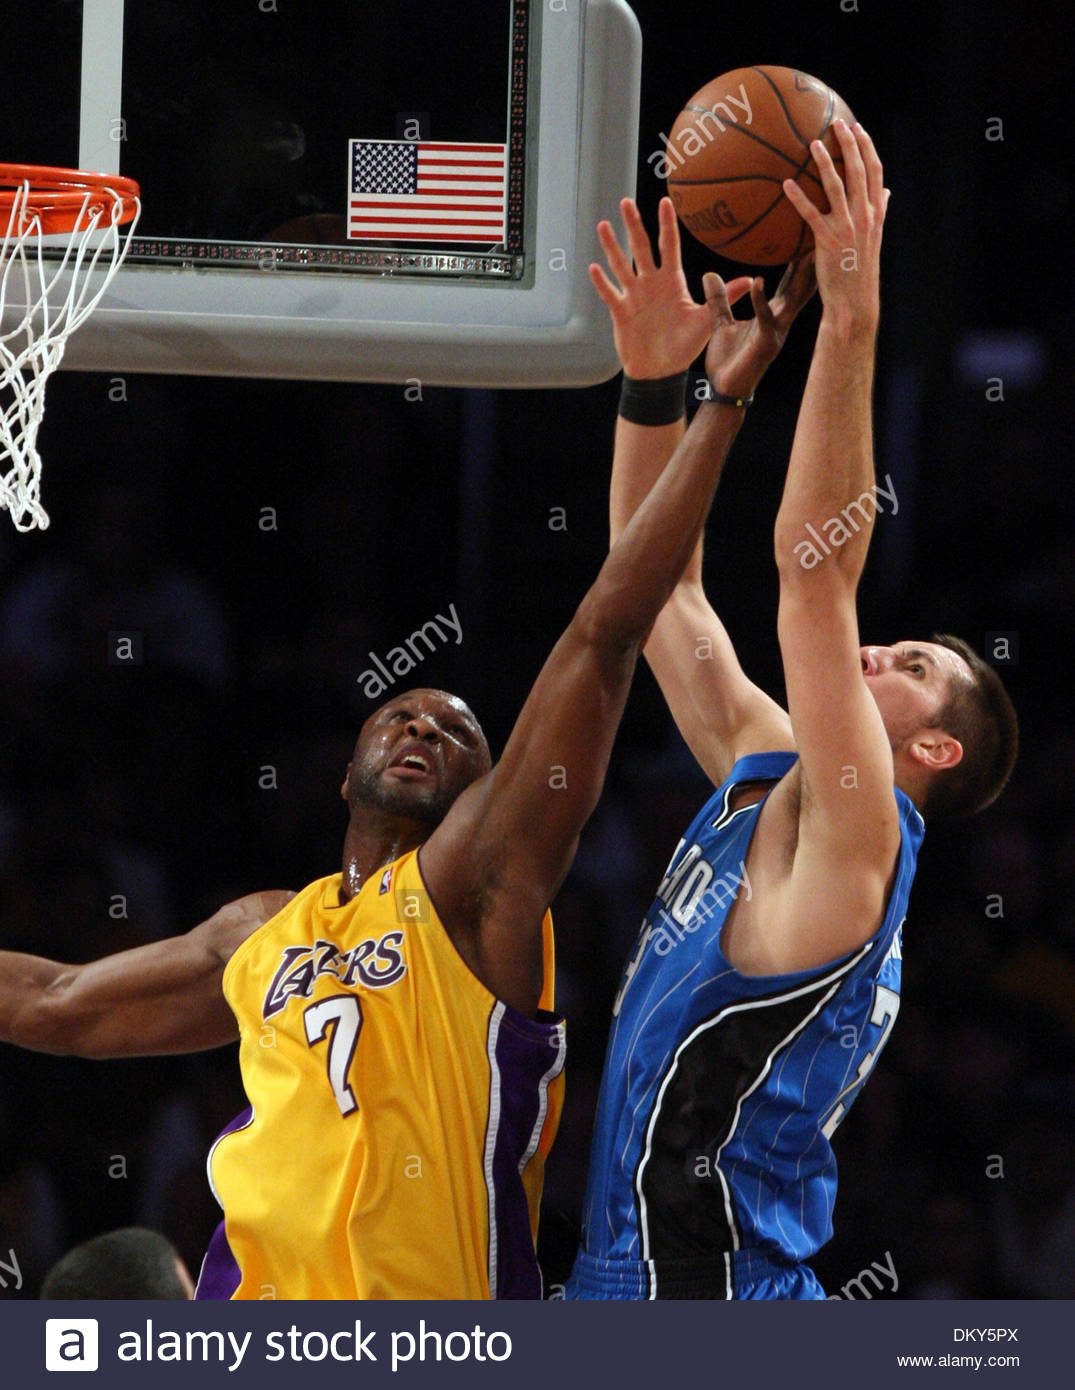 Jan. 18, 2010 - LOS ANGELES, California, United States - Los Angeles Lakers' Lamar Odom (7) fights for  the loose ball with Orlando Magic's Ryan Anderson (33) in the first half of a basketball game at the Staples Center on Monday, January 18, 2010 in Los Angeles. (Credit Image: © San Gabriel Valley Tribune/ZUMApress.com) - Stock Image